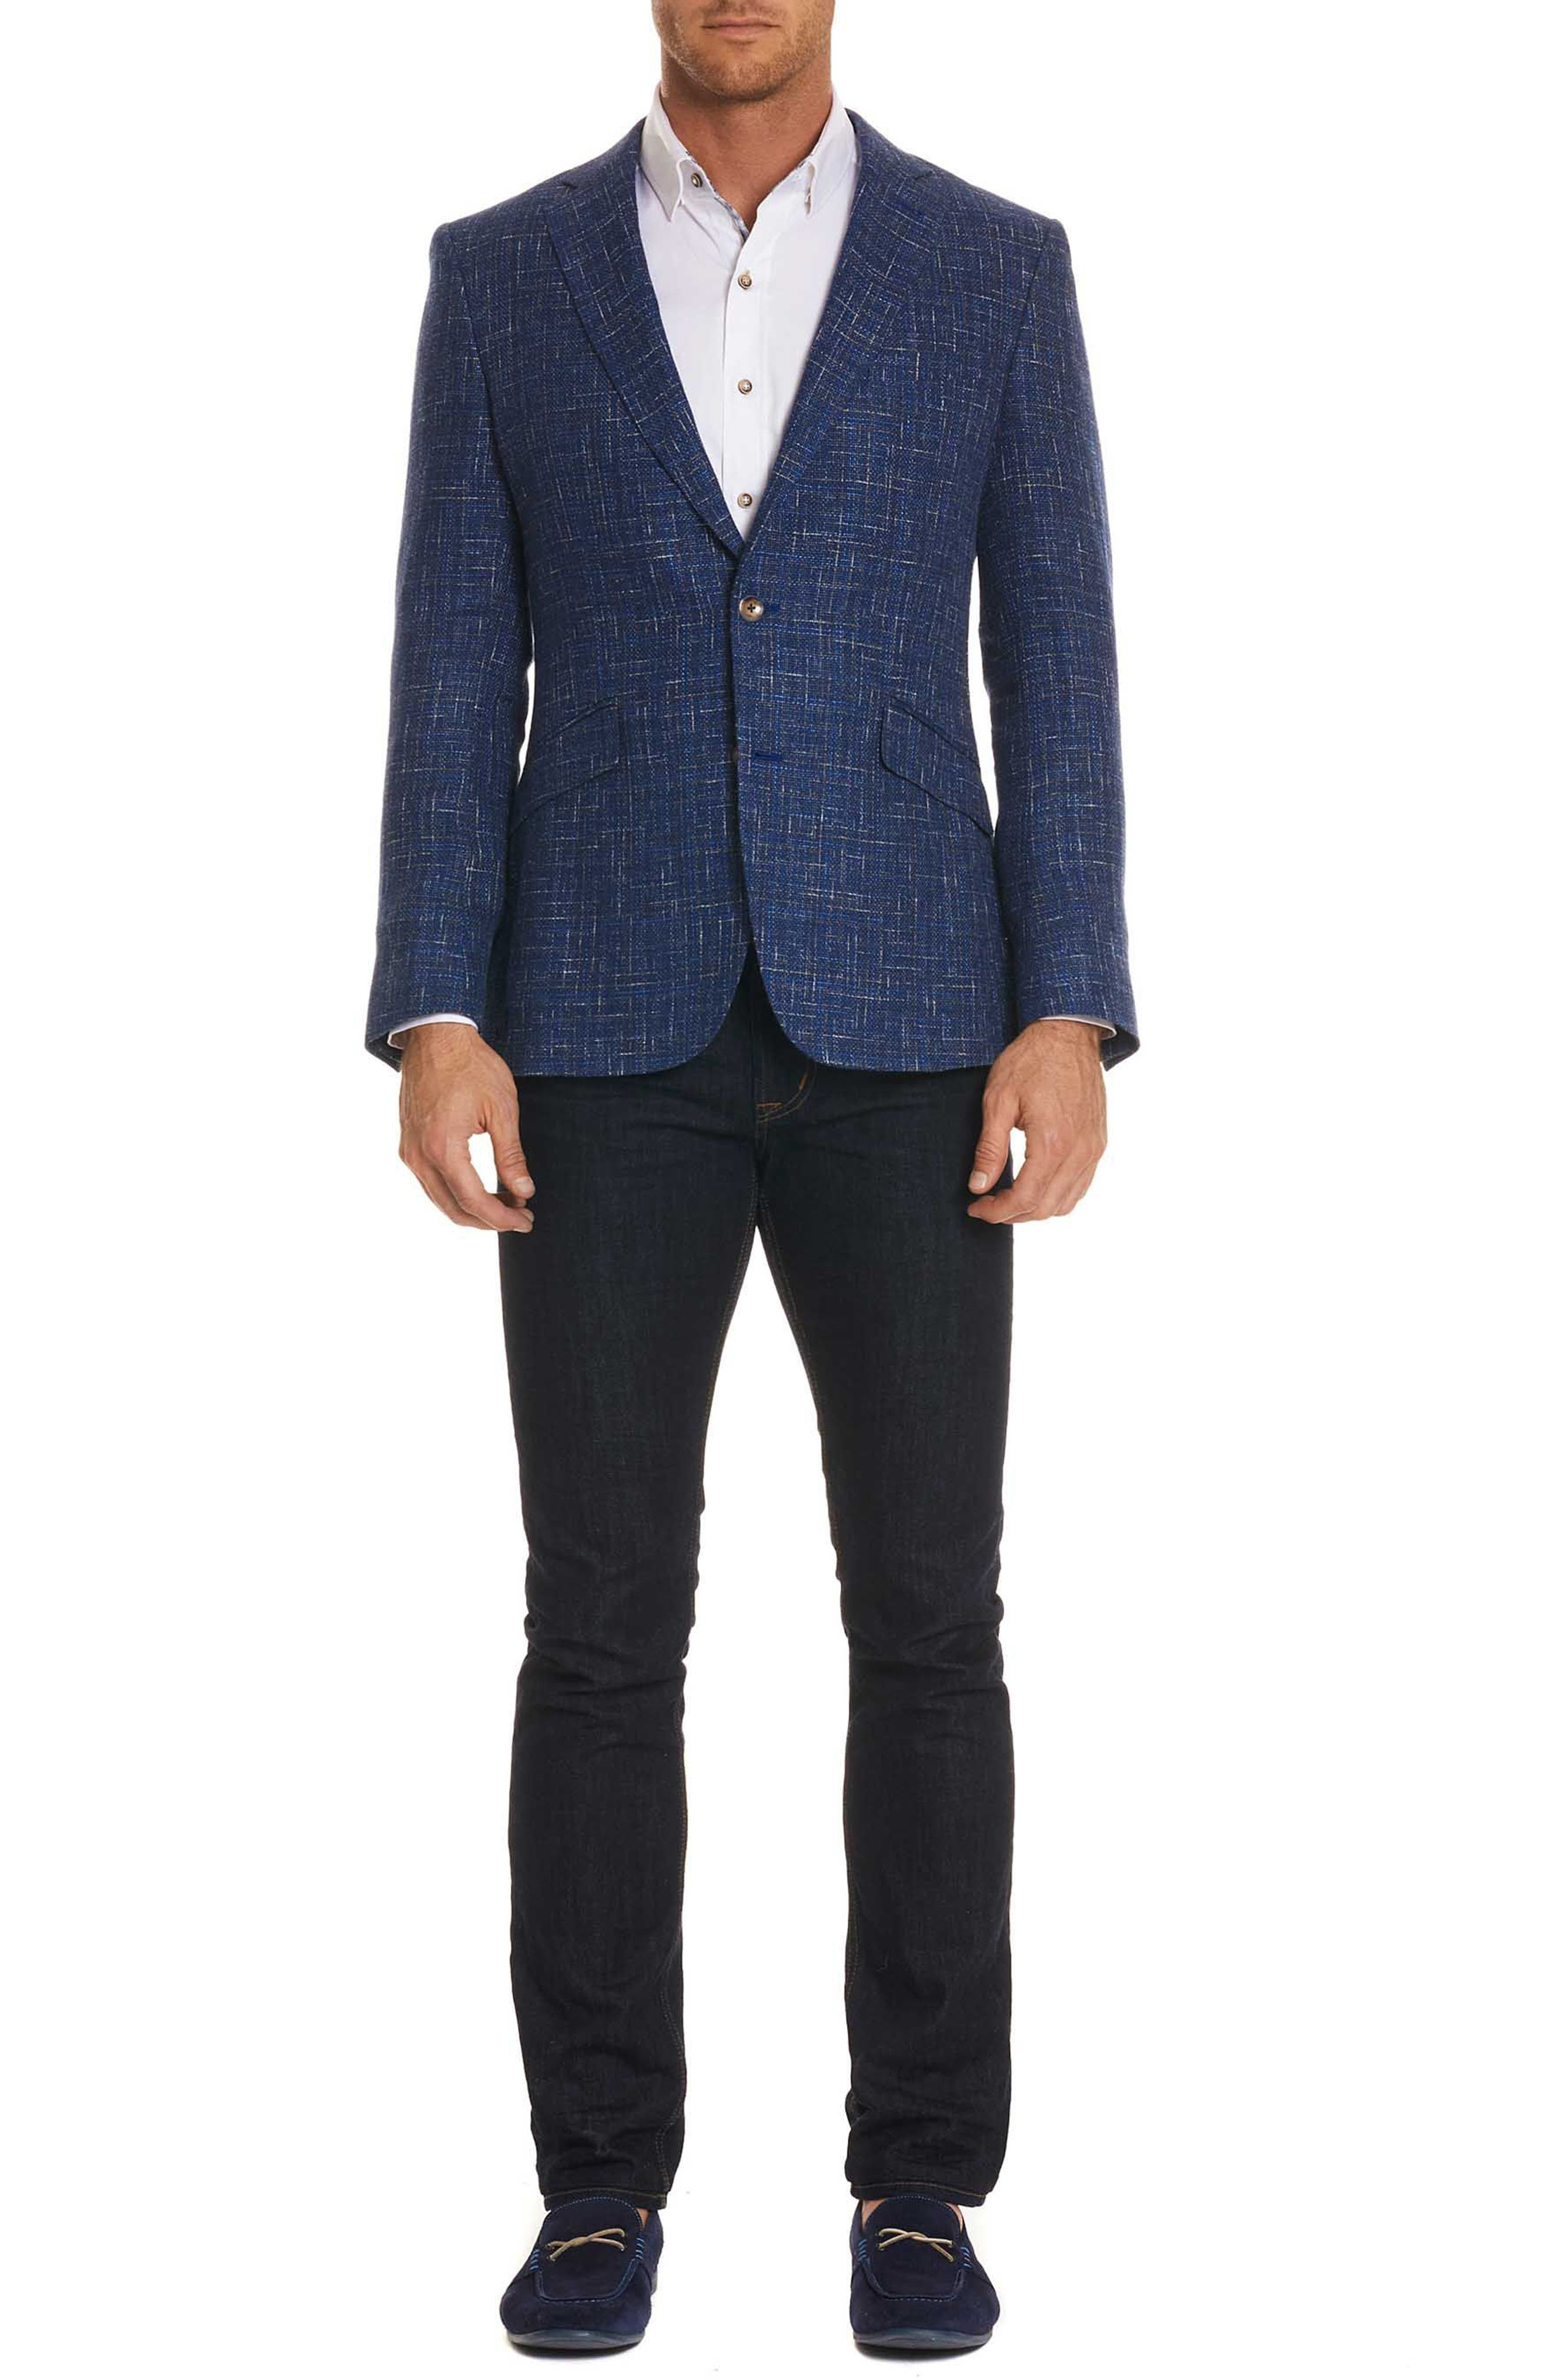 Jeremy Tailored Fit Sportcoat,                             Alternate thumbnail 5, color,                             BLUE